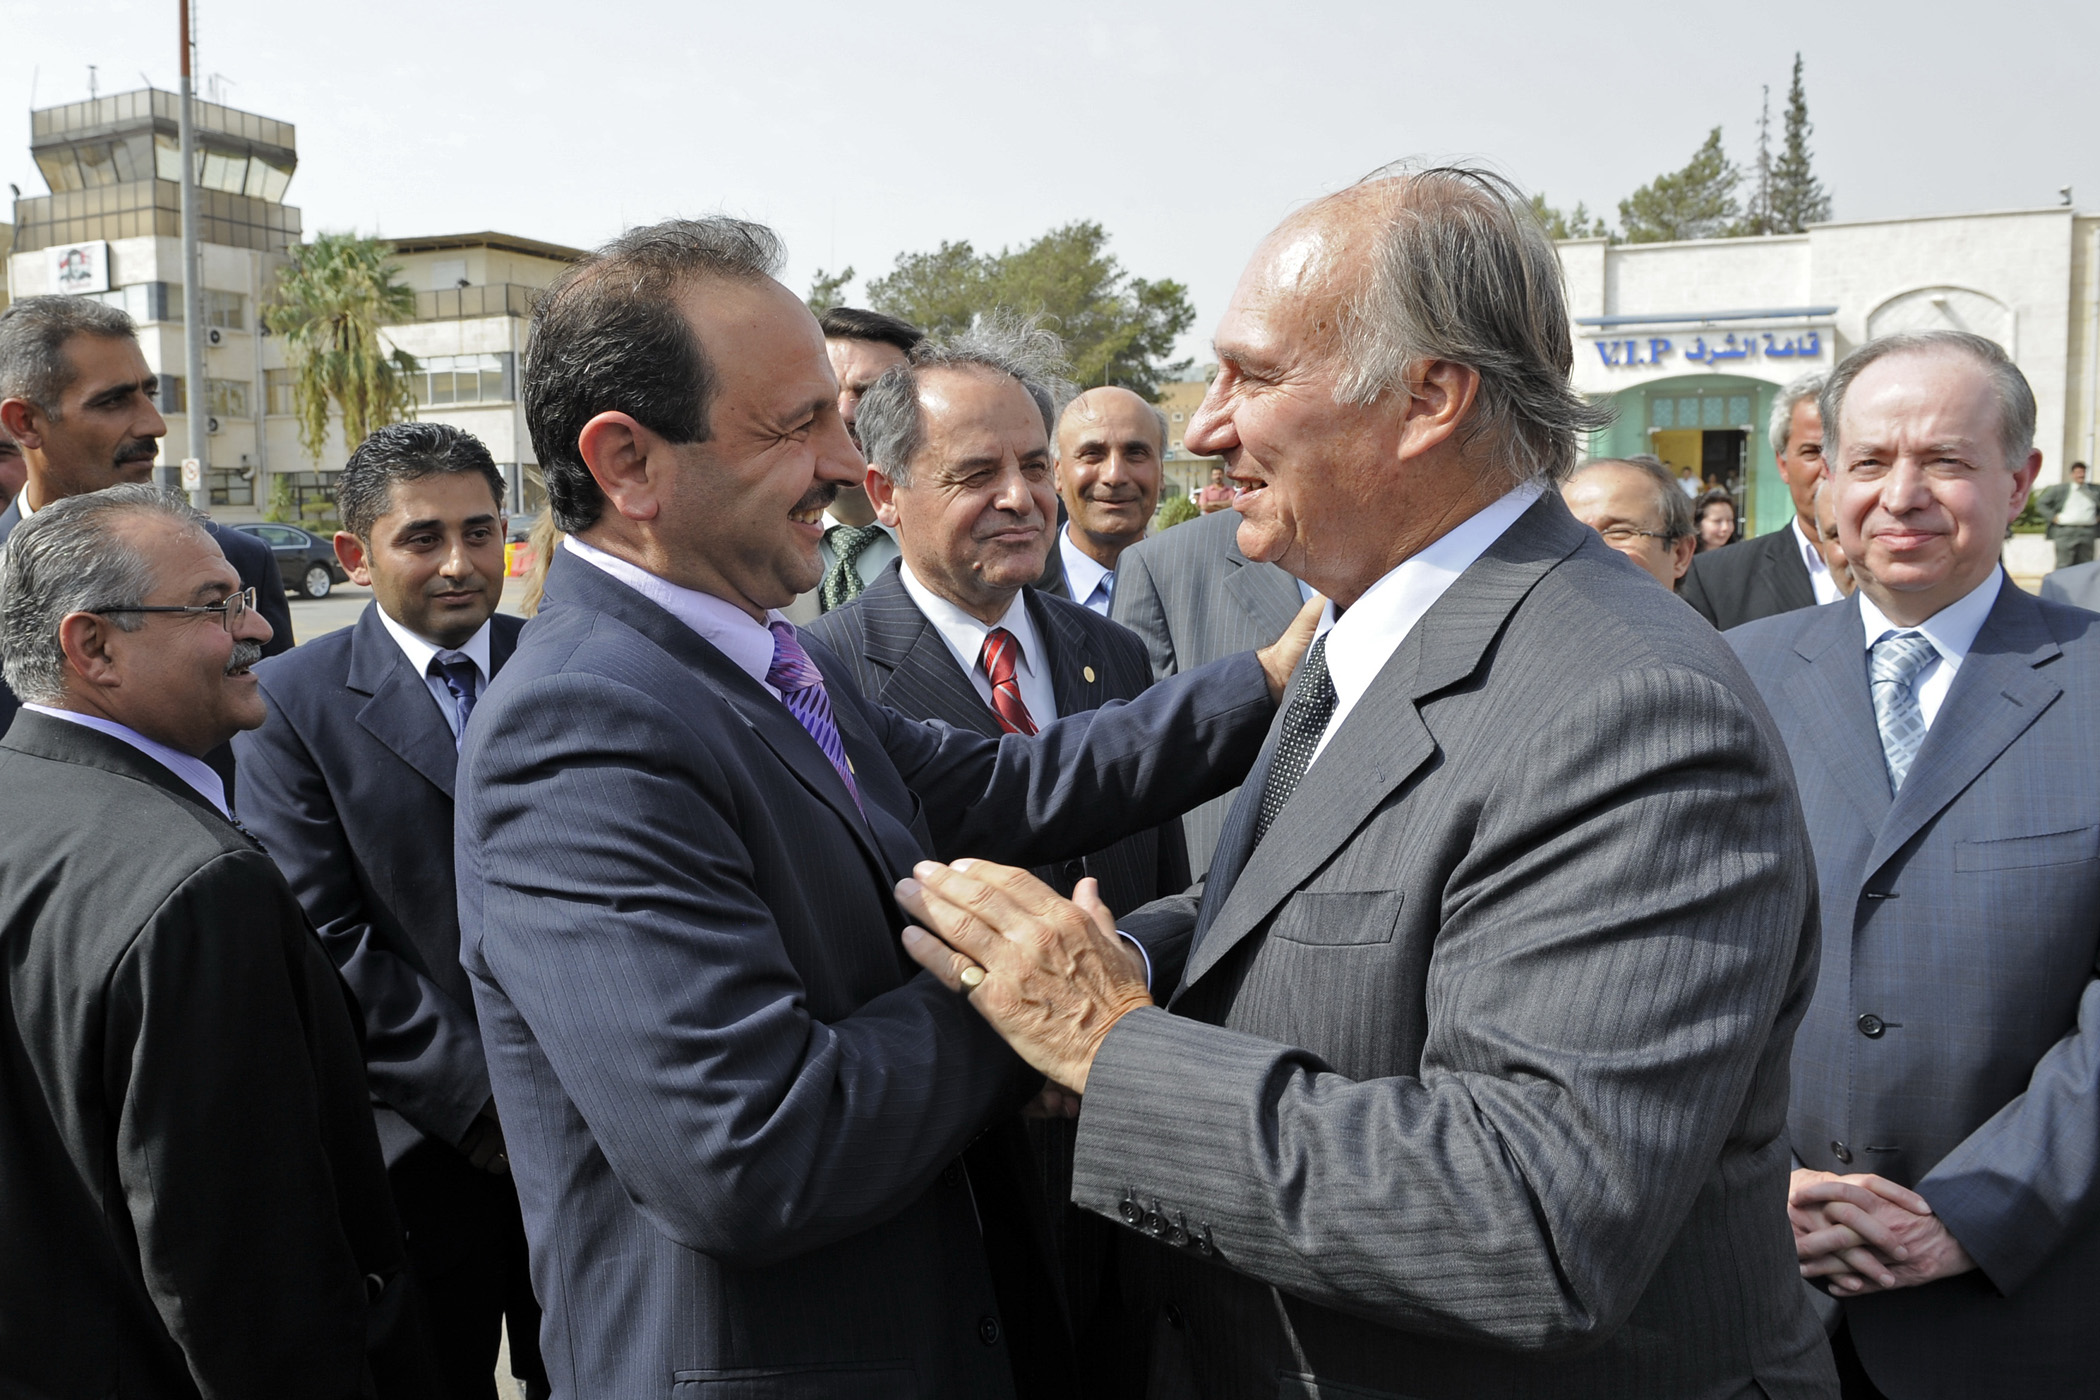 President Nasser Al-Maghout of the Ismaili Council for Syria bids farewell to Mawlana Hazar Imam at the conclusion of his Golden Jubilee visit to Syria. Photo: Gary Otte